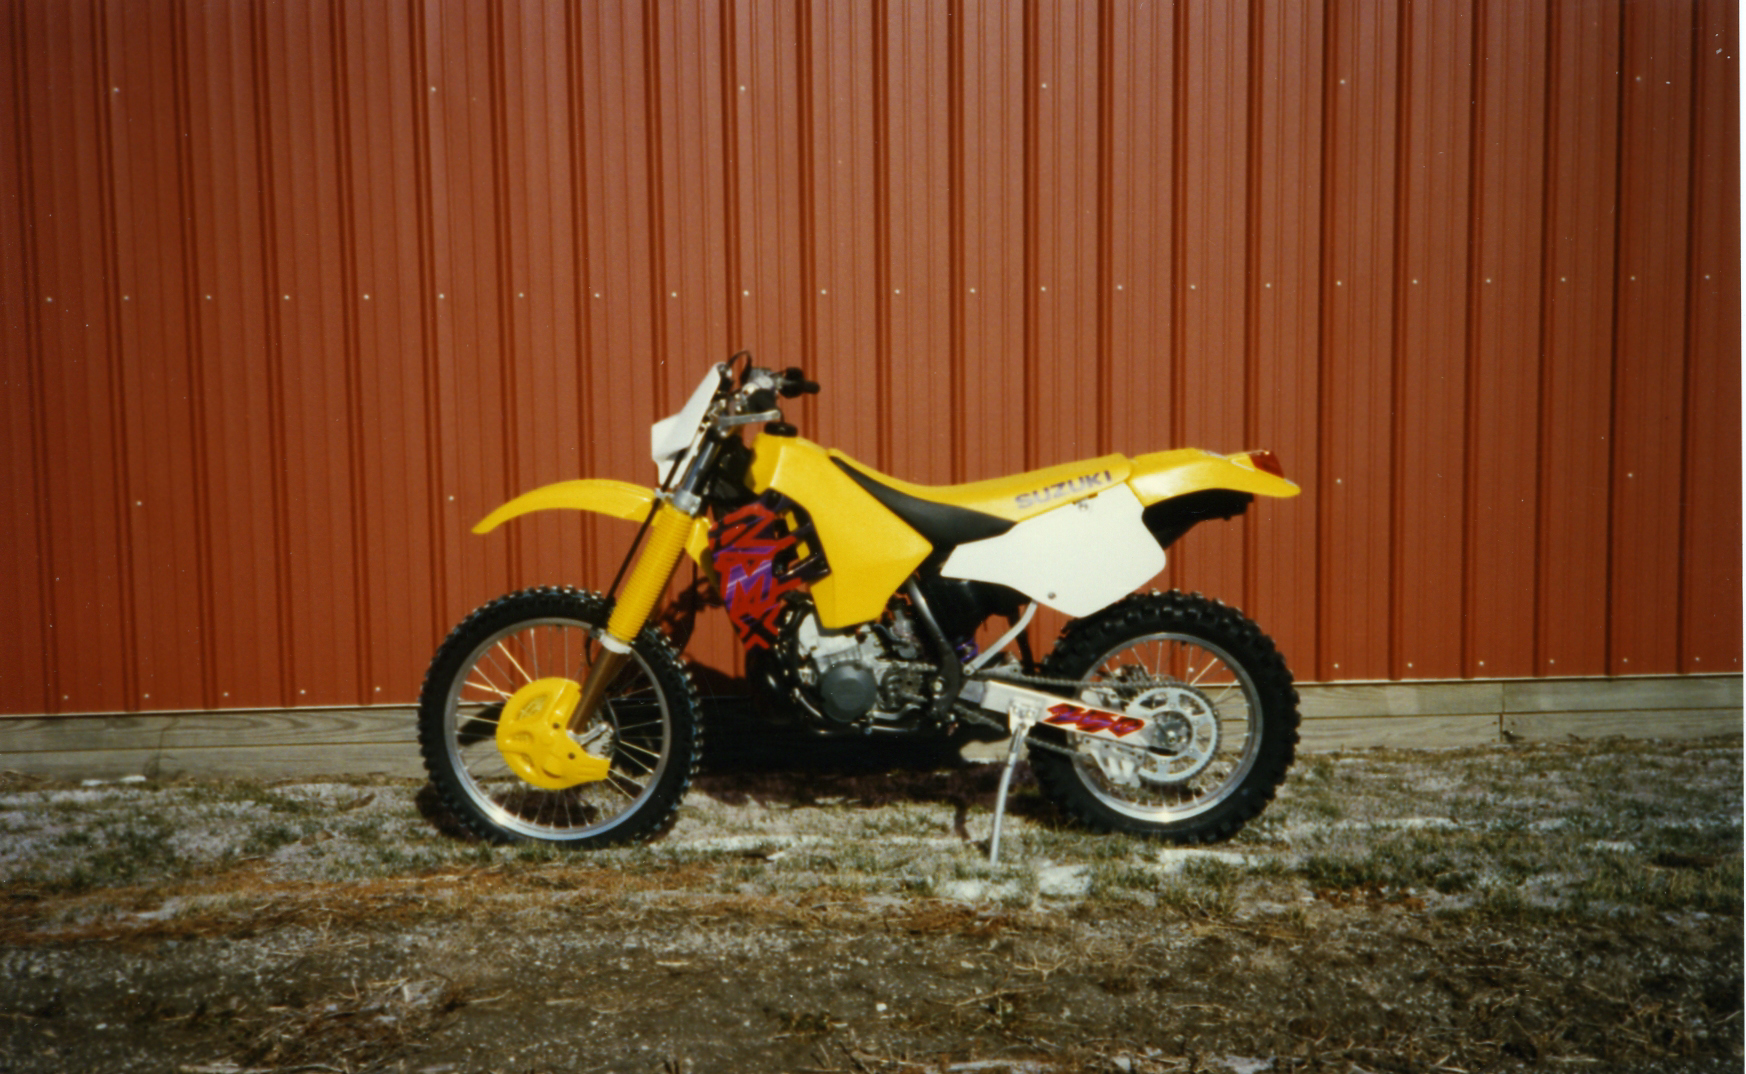 suzuki vl 250 service manual